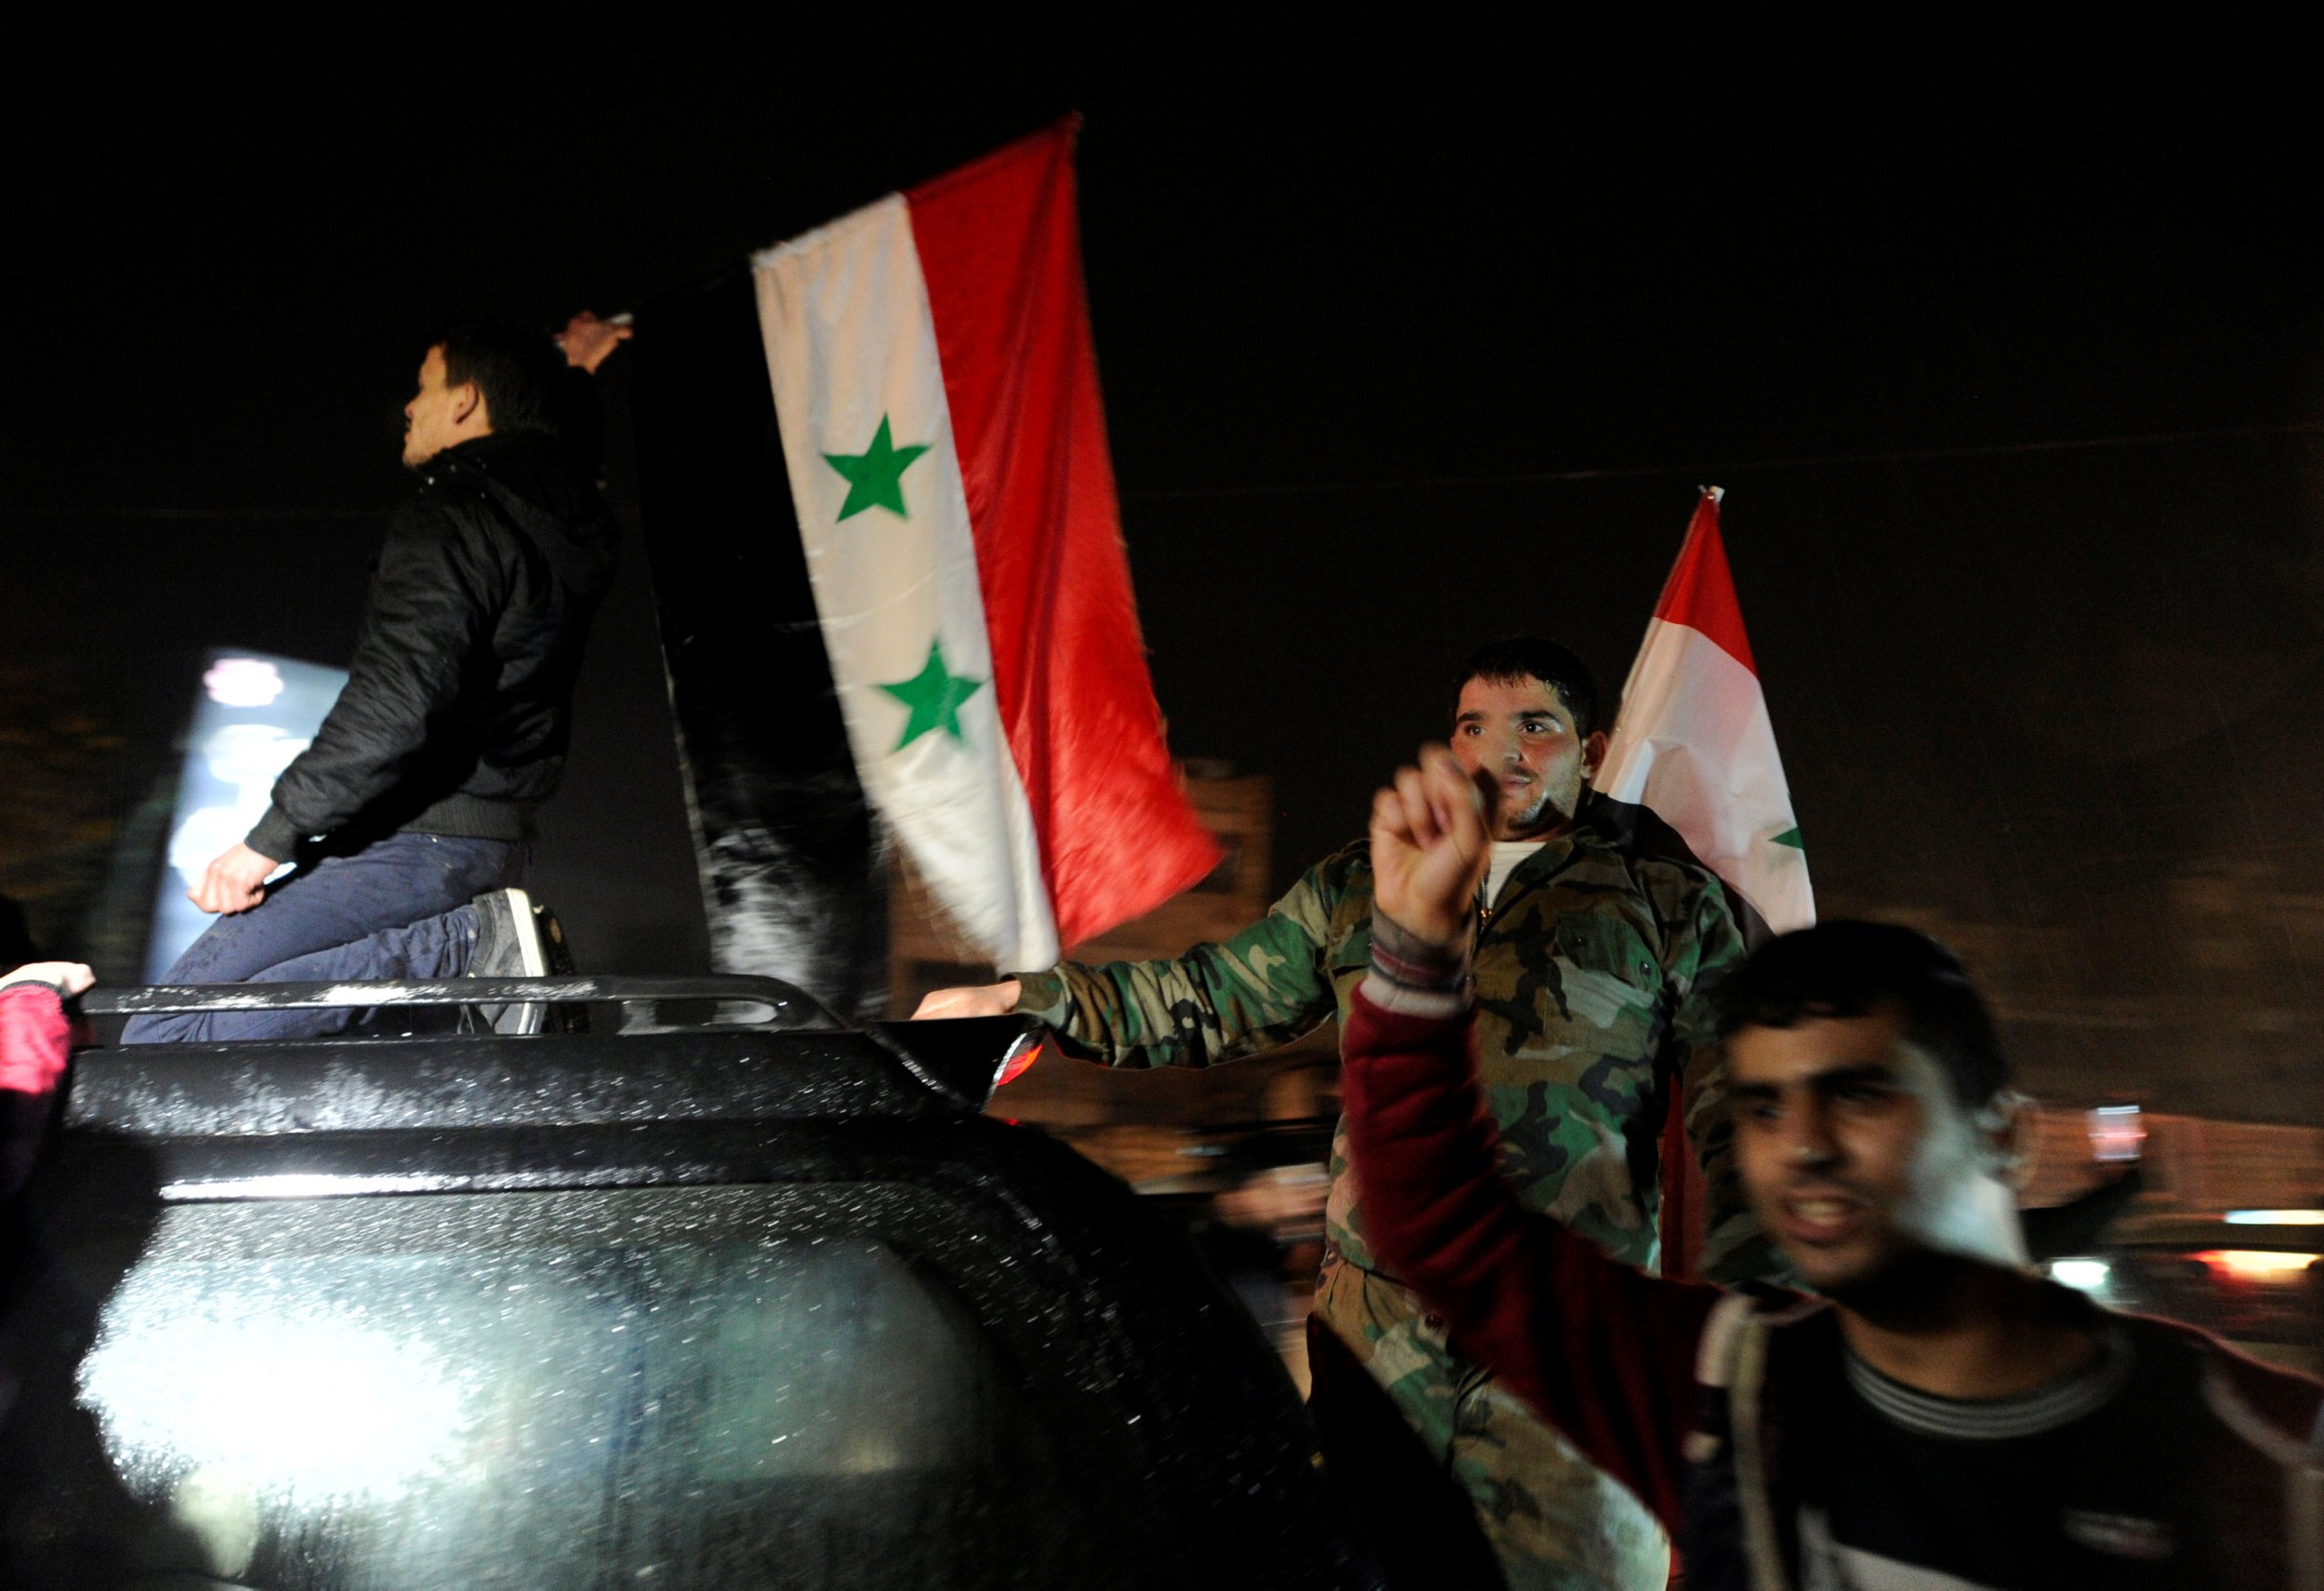 Aleppo Assad supporters